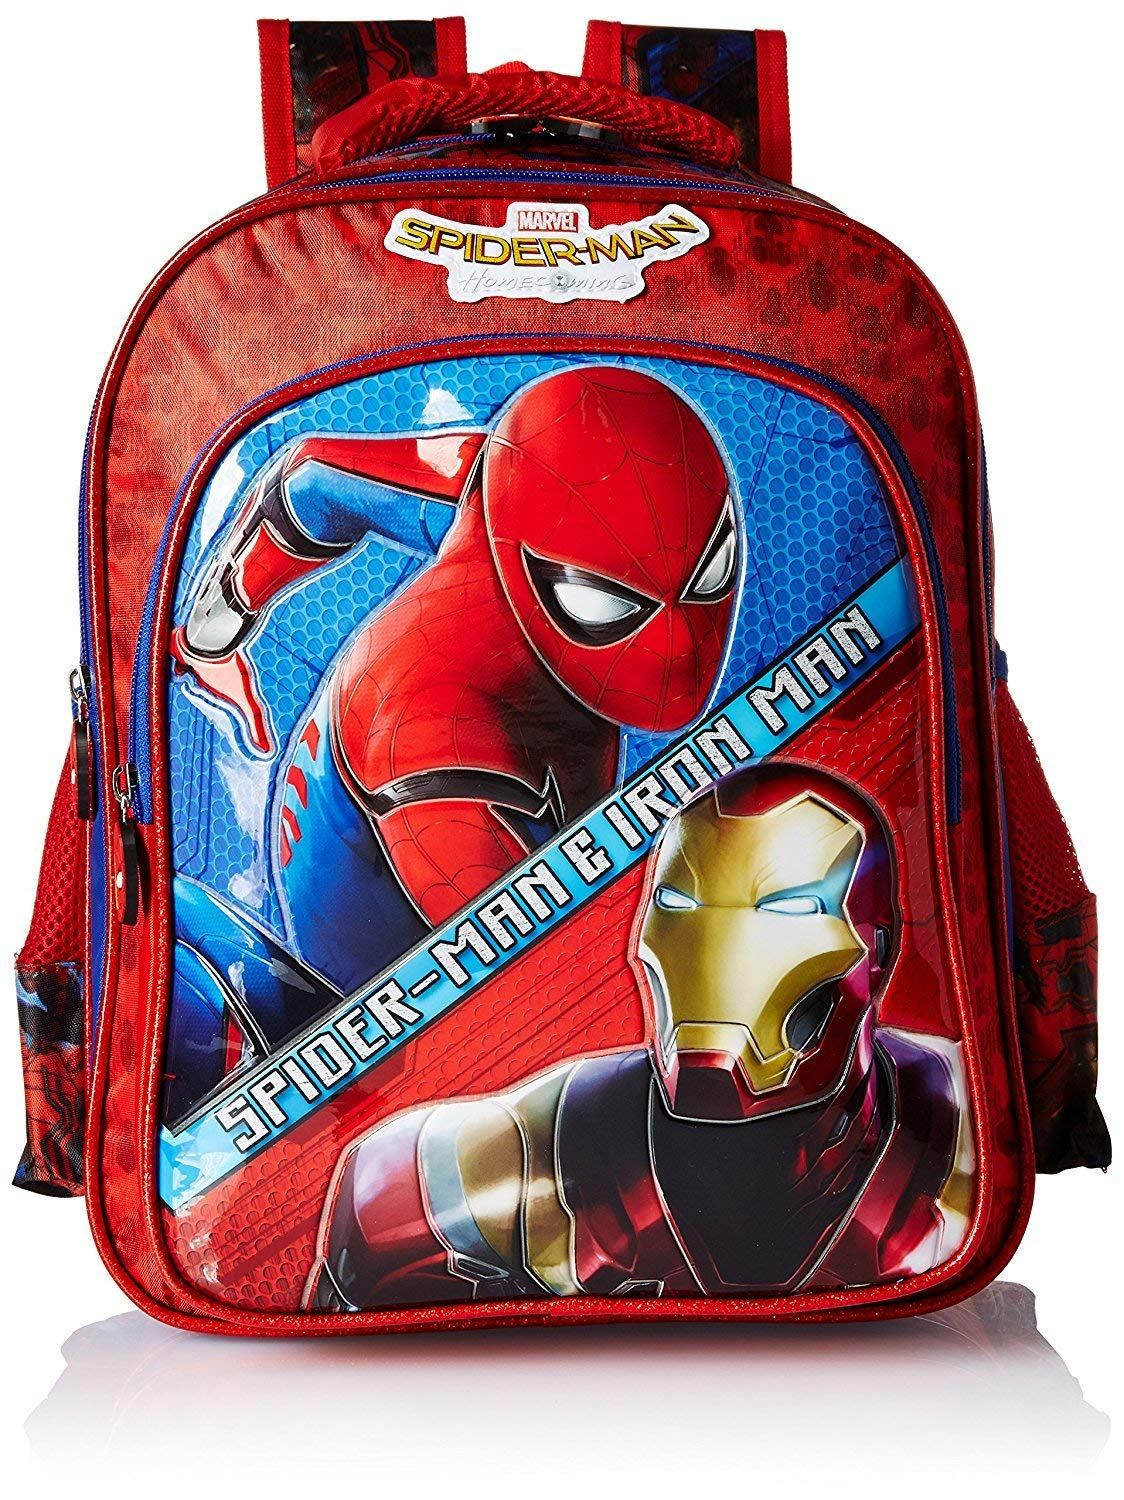 84ae2b27dcd Spiderman Homecoming School Bag for Children of Age Group 6-8 Years | Size  16 inch: Amazon.in: Bags, Wallets & Luggage